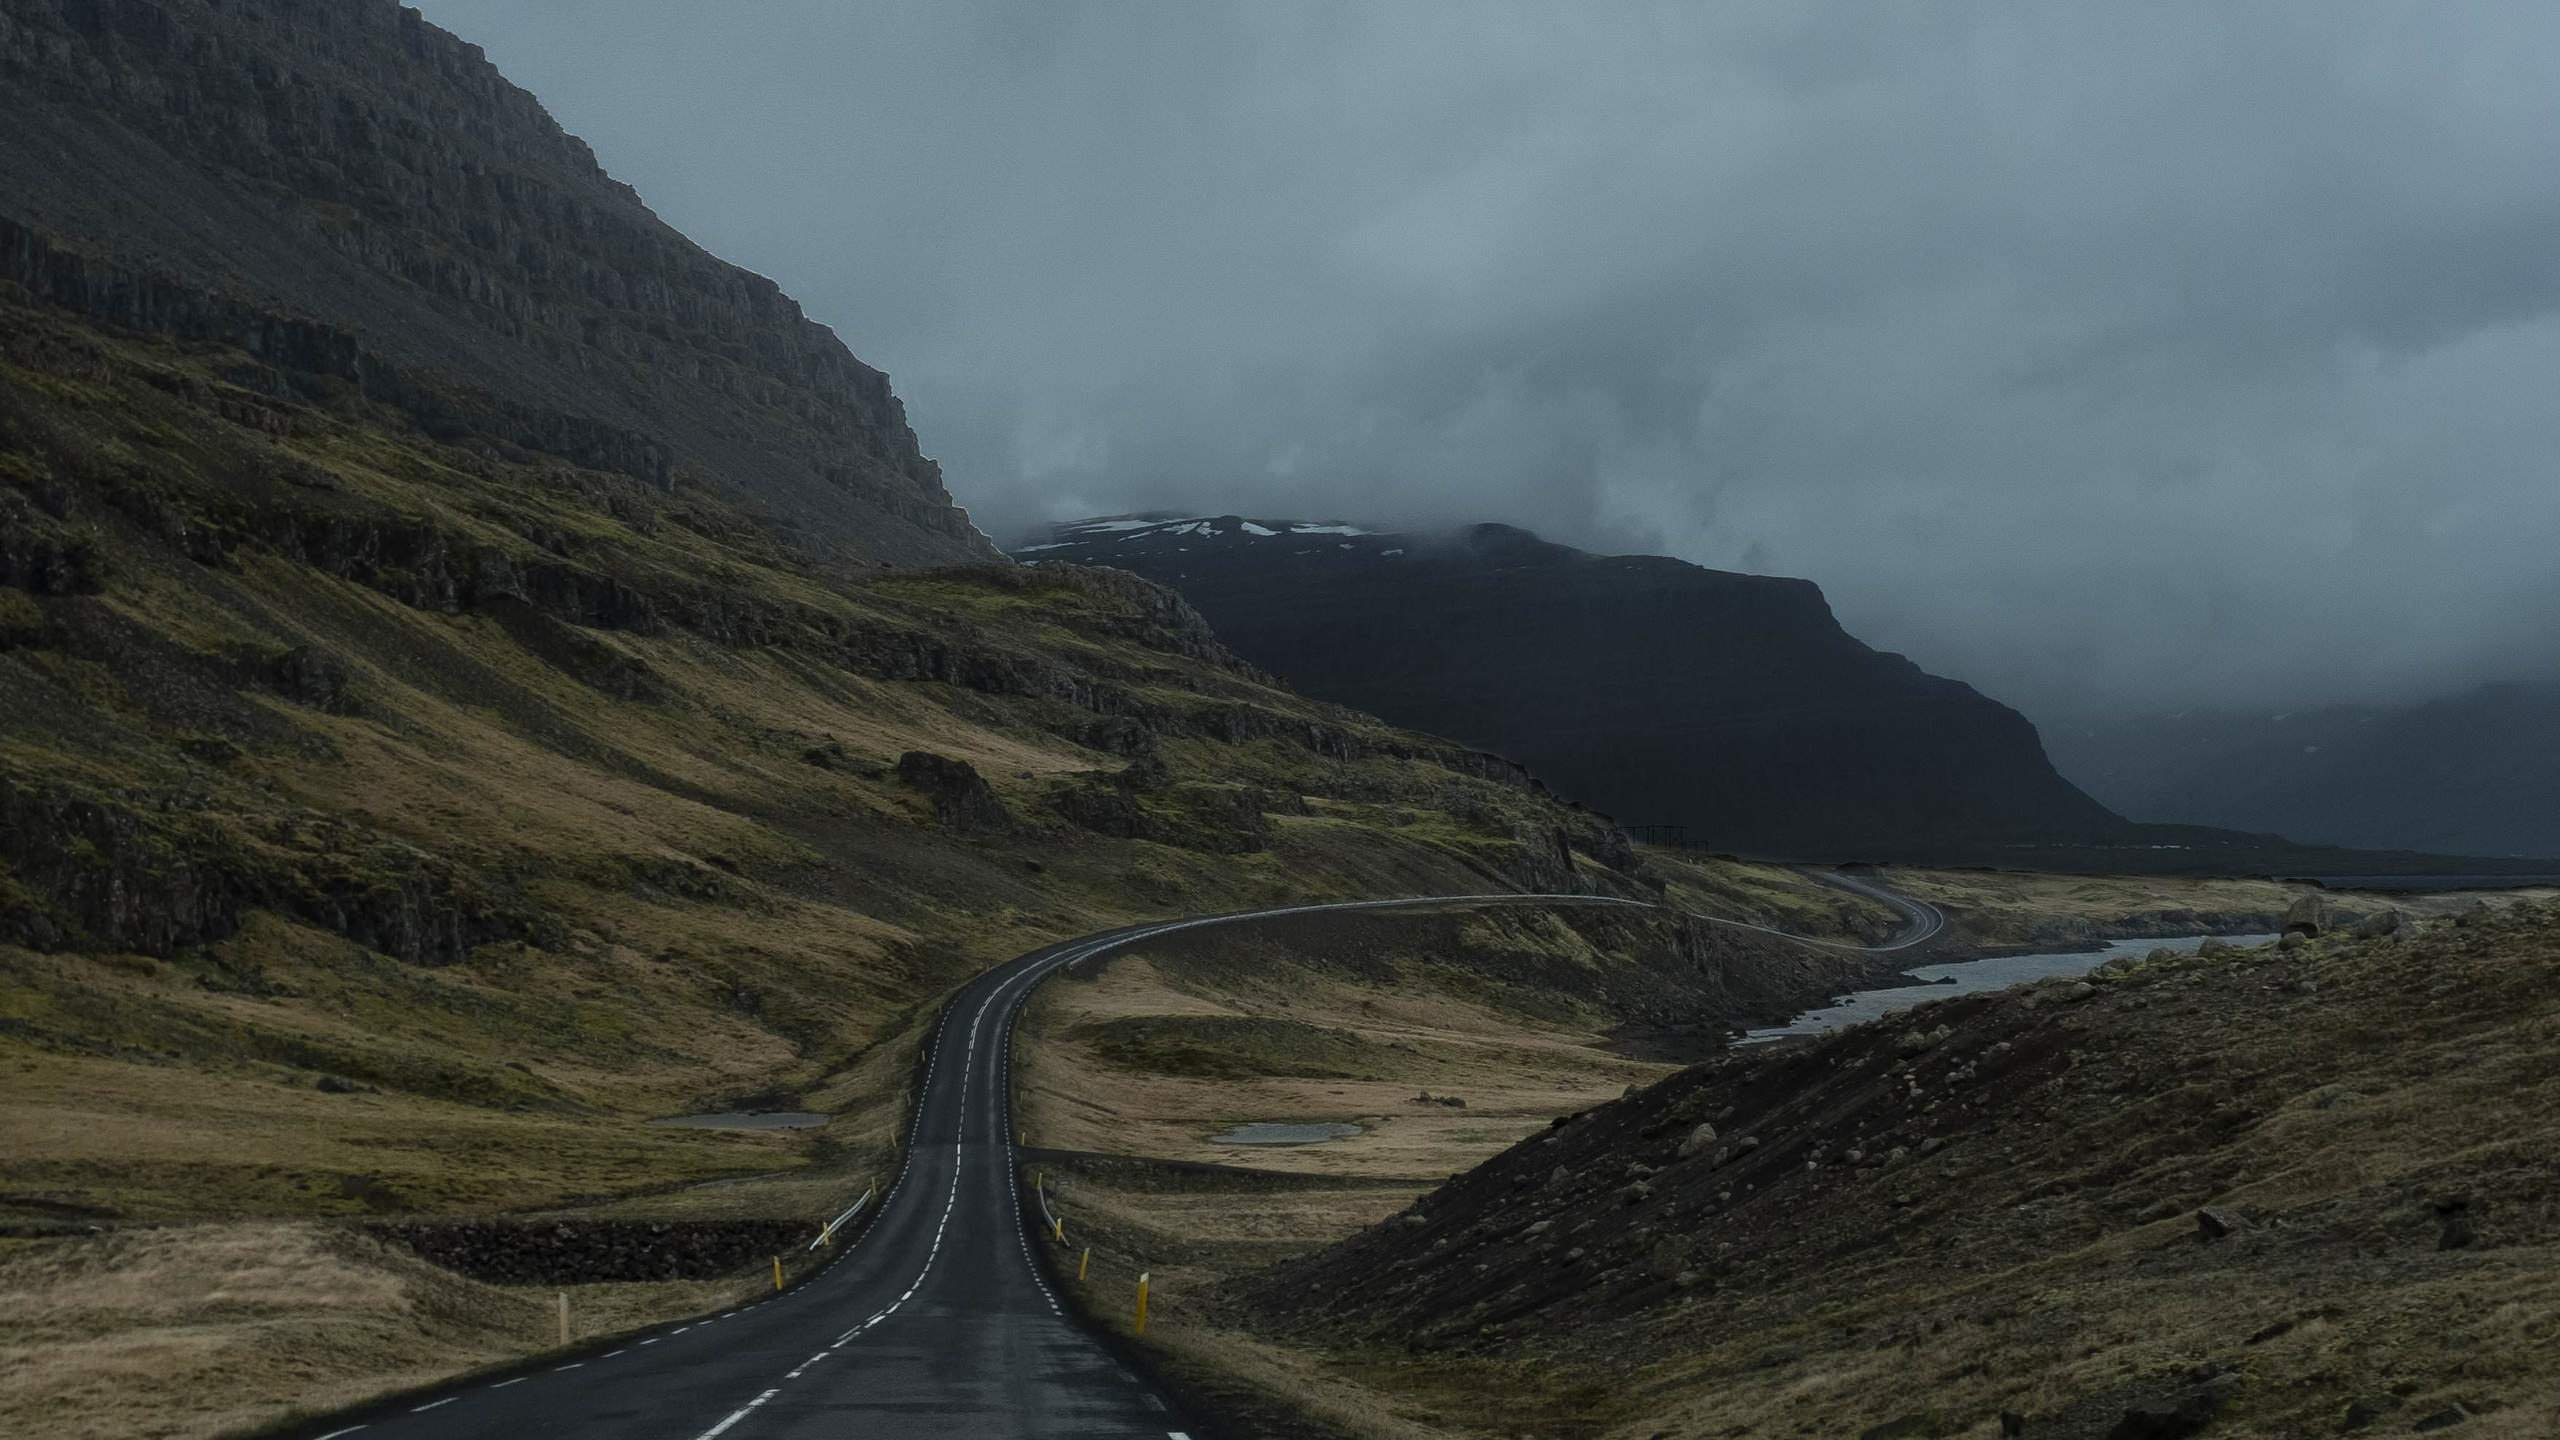 Iceland S Ring Road Wallpapers: Moody Wallpapers 4k For Your Phone And Desktop Screen